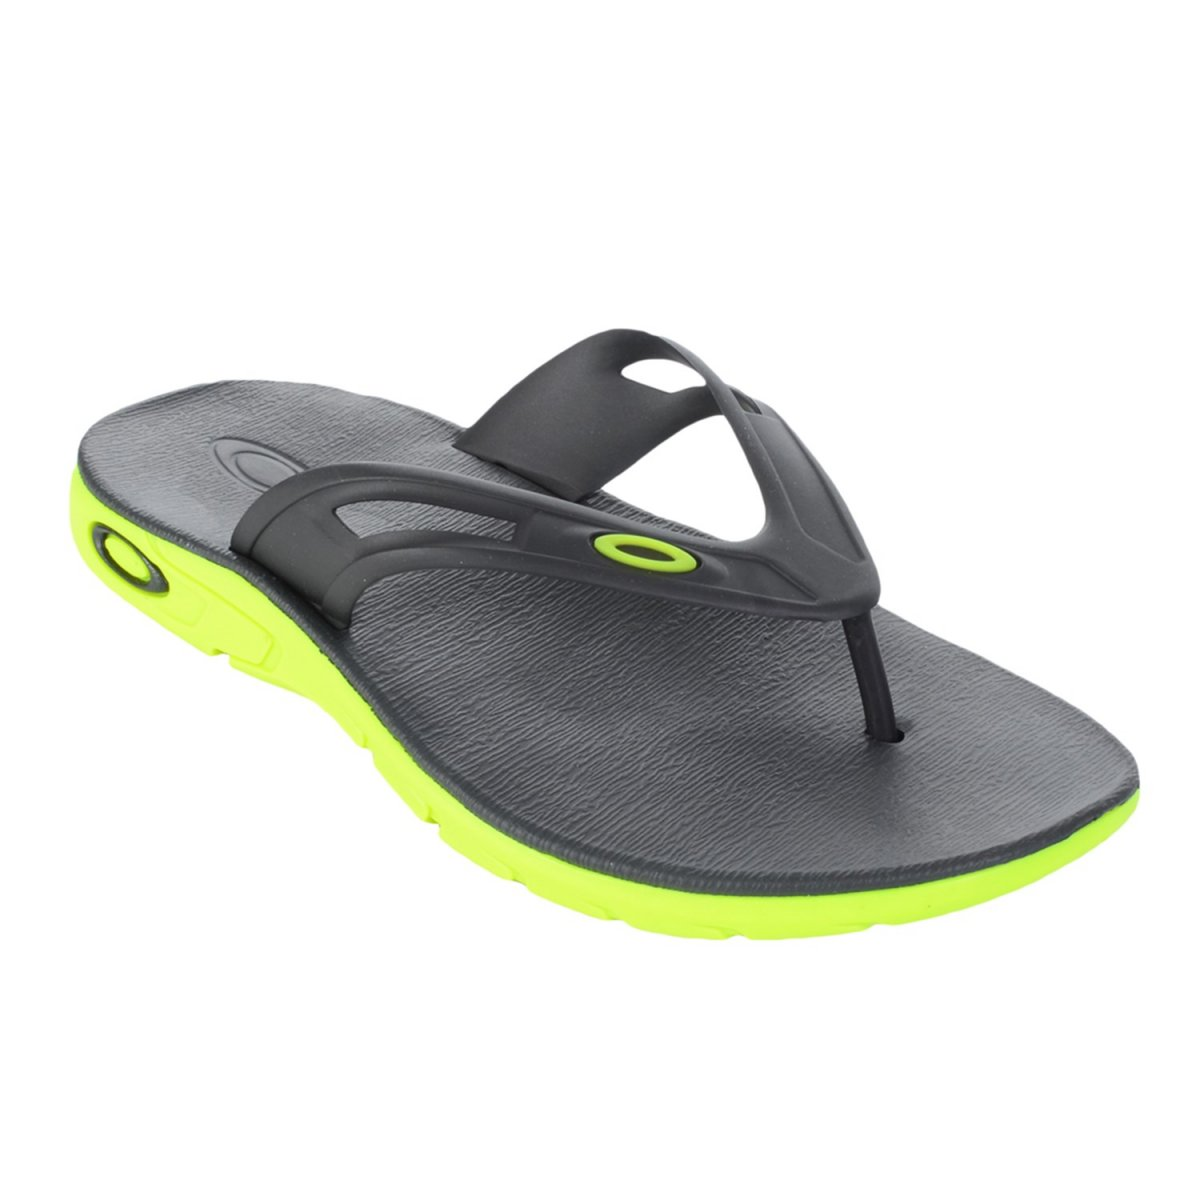 e53b448f10375 Chinelo Oakley Rest